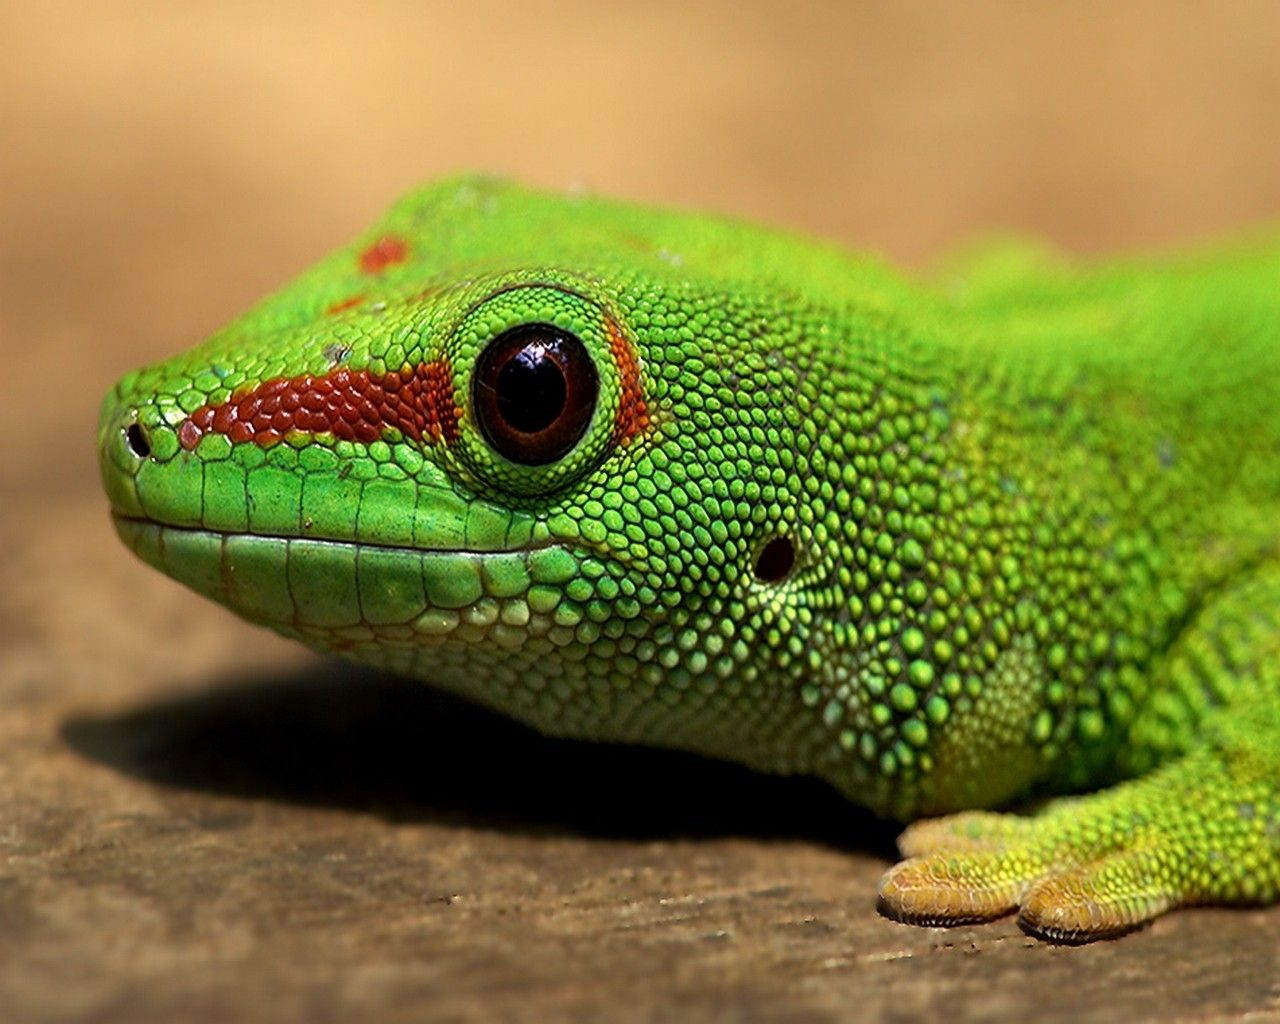 Lizards Are About To Obtain Your First Pet Lizard Congratulations Lizards Pet Lizards Lizard Reptiles And Amphibians